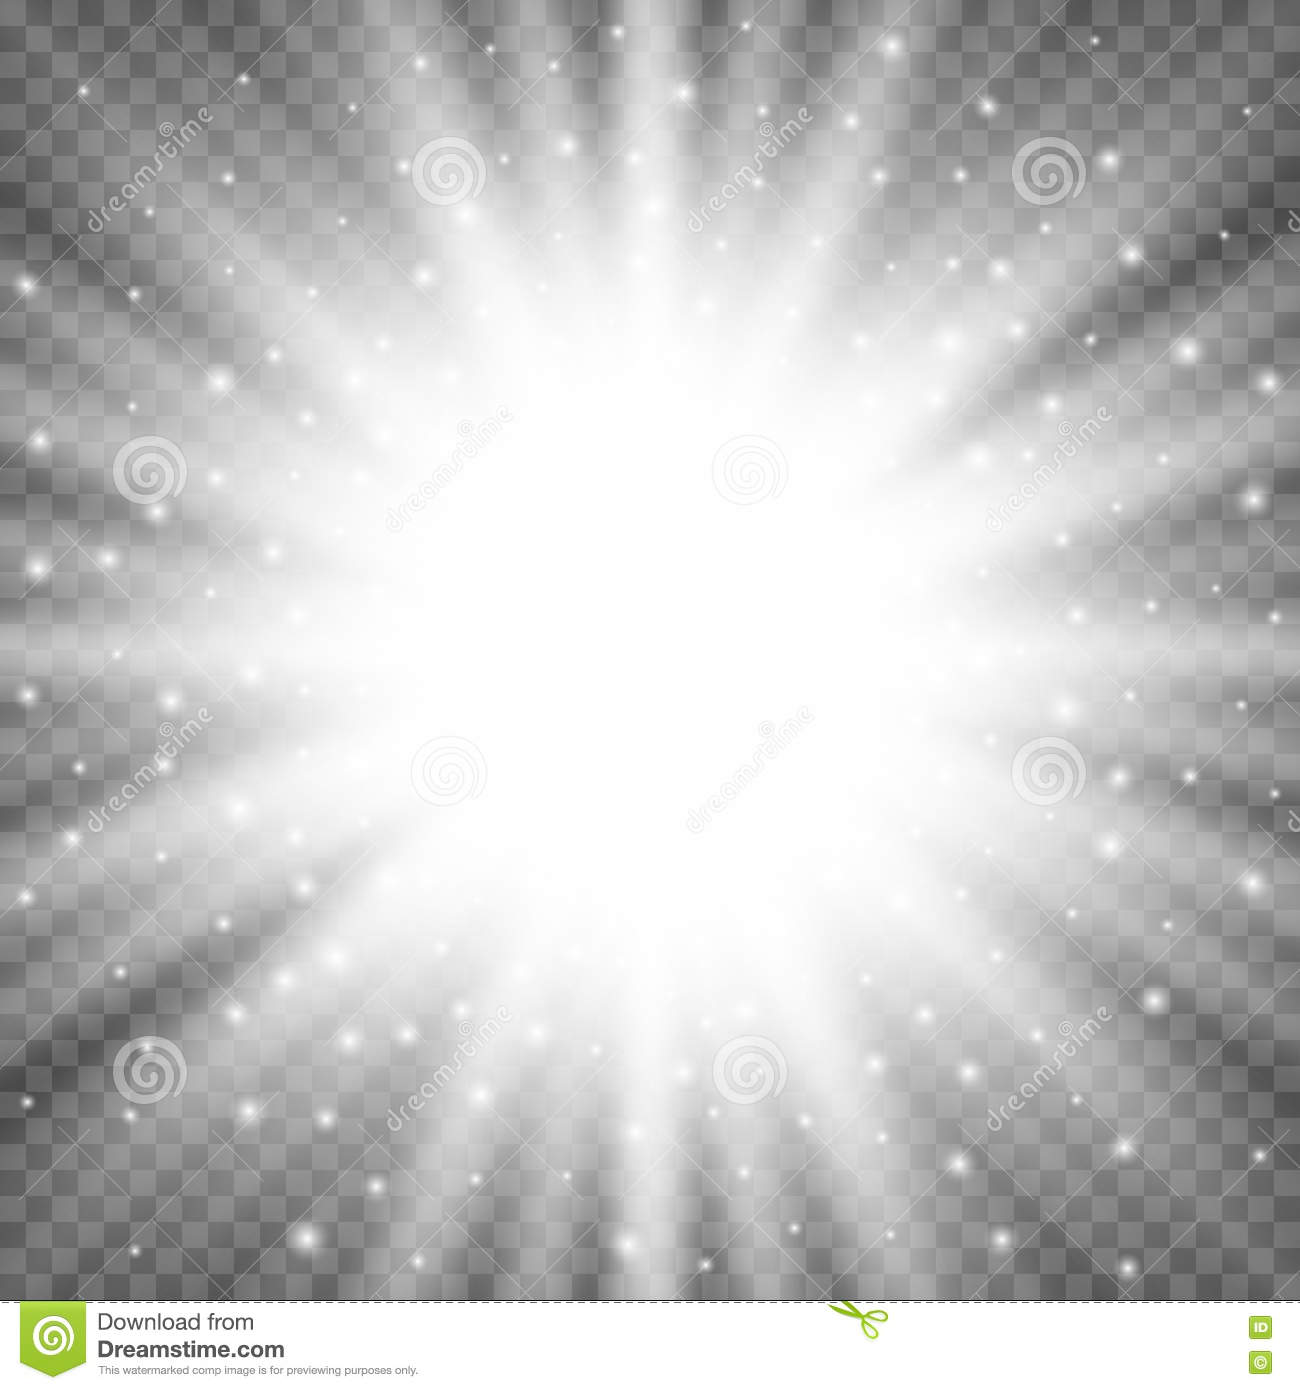 Superior ... White Glowing Light Burst Explosion On Transparent Background. Bright  Flare Effect Decoration With Ray Sparkles Idea